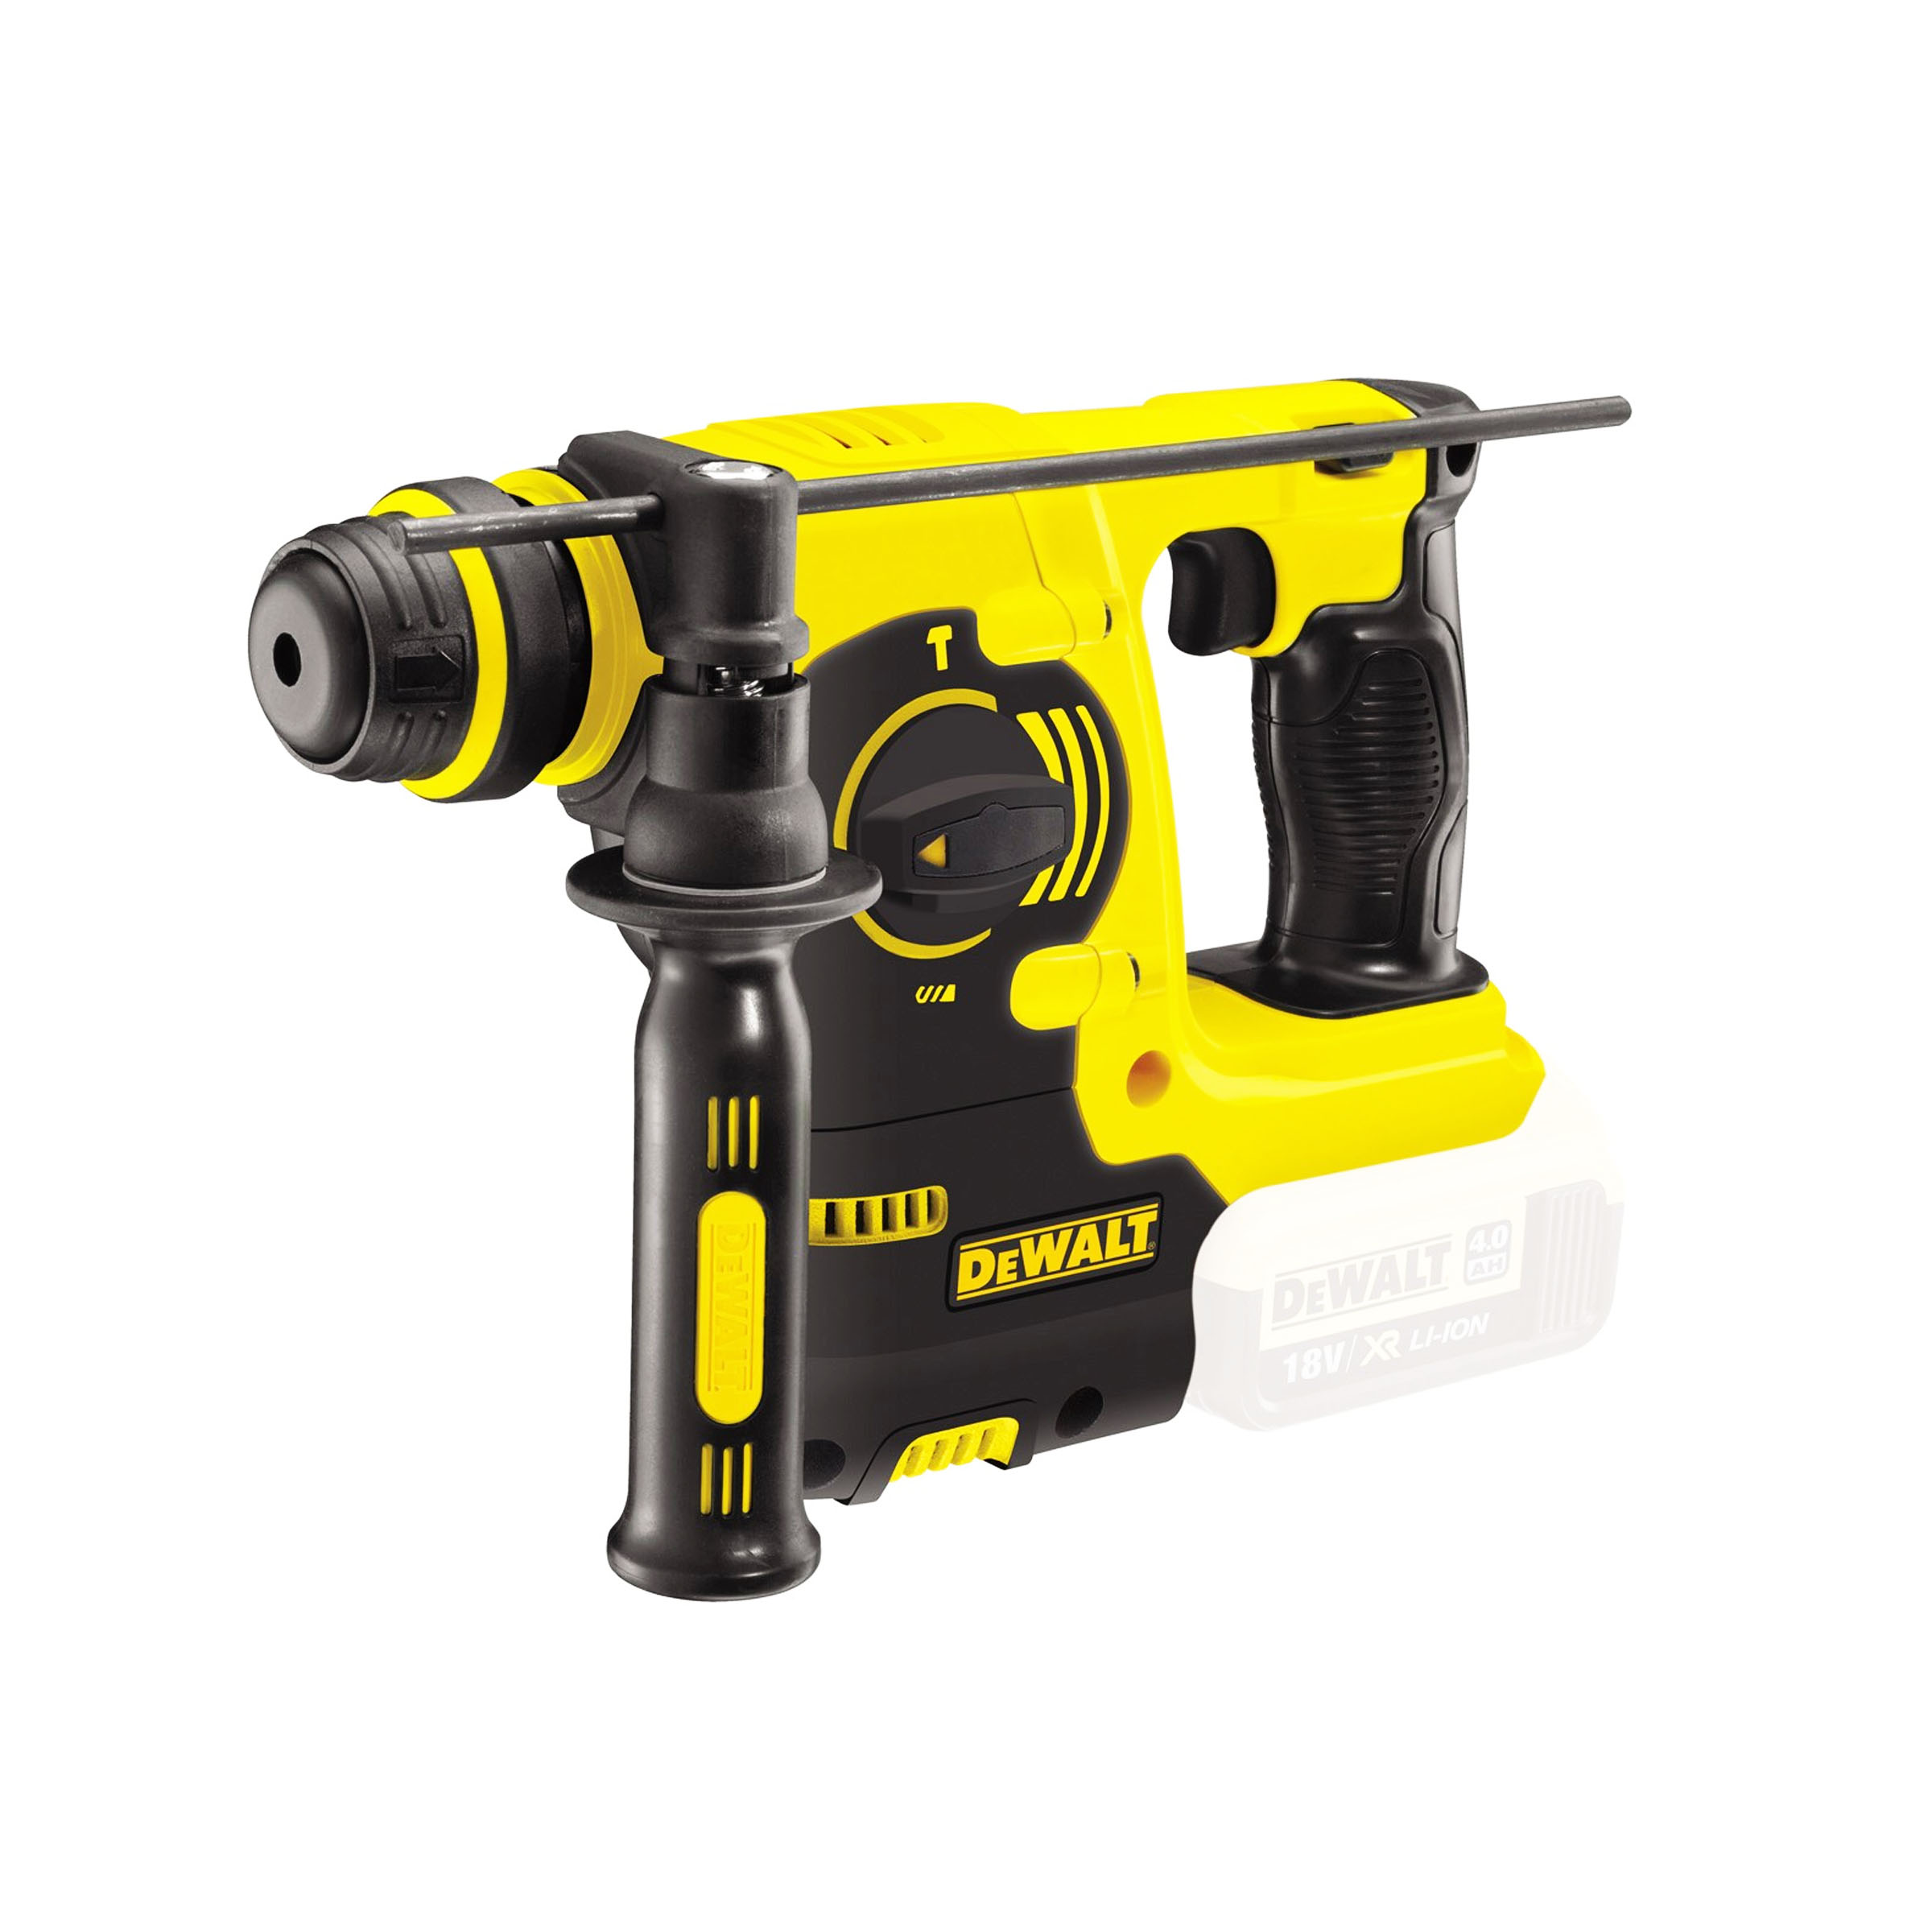 toptopdeal-DeWalt 18V XR Lithium-Ion SDS Plus Body Only Rotary Hammer Drill